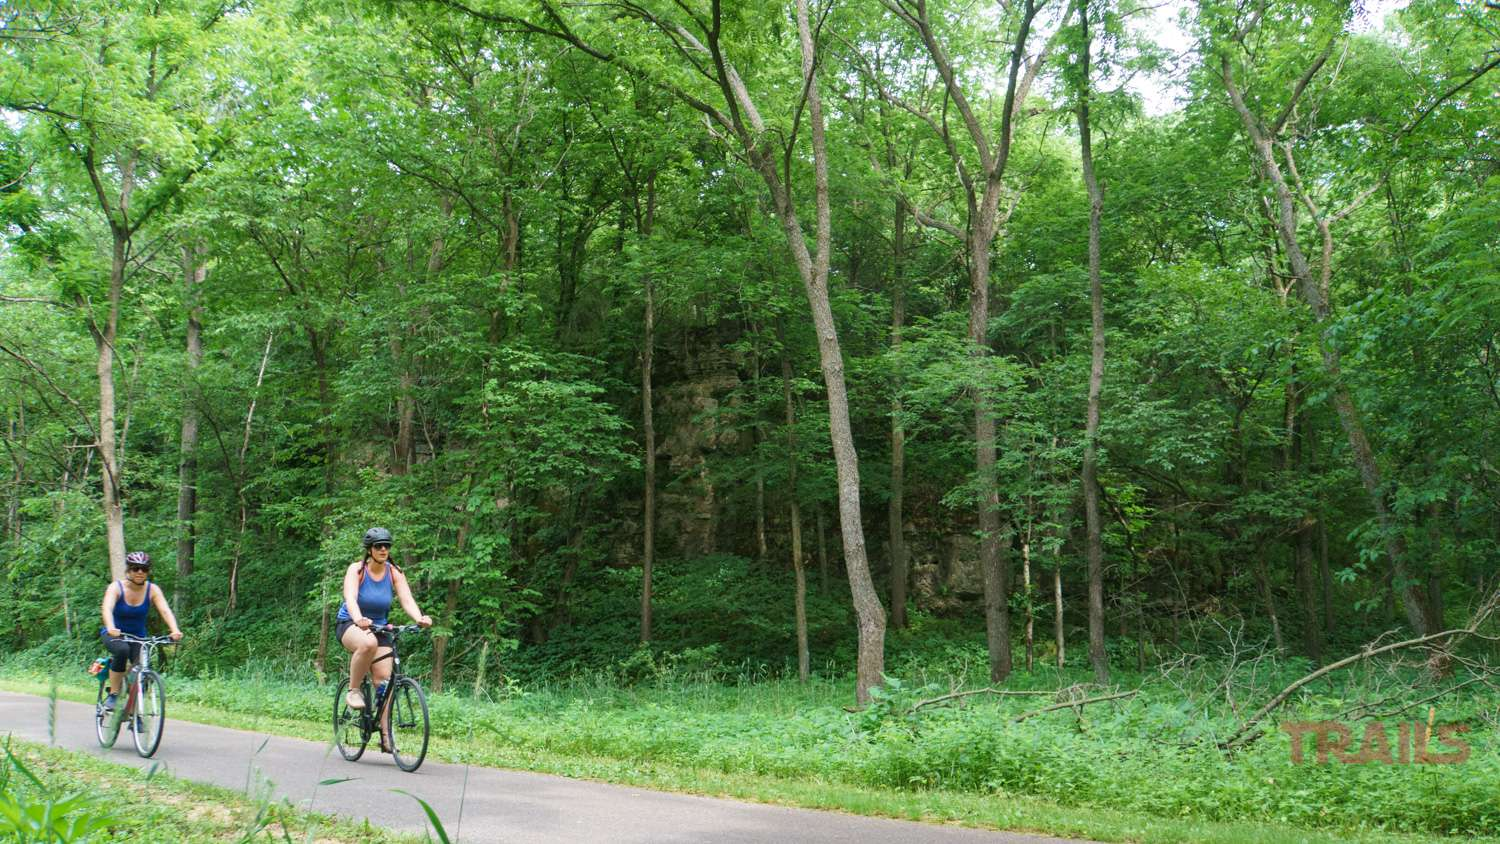 Two women bike on a trail lined with trees